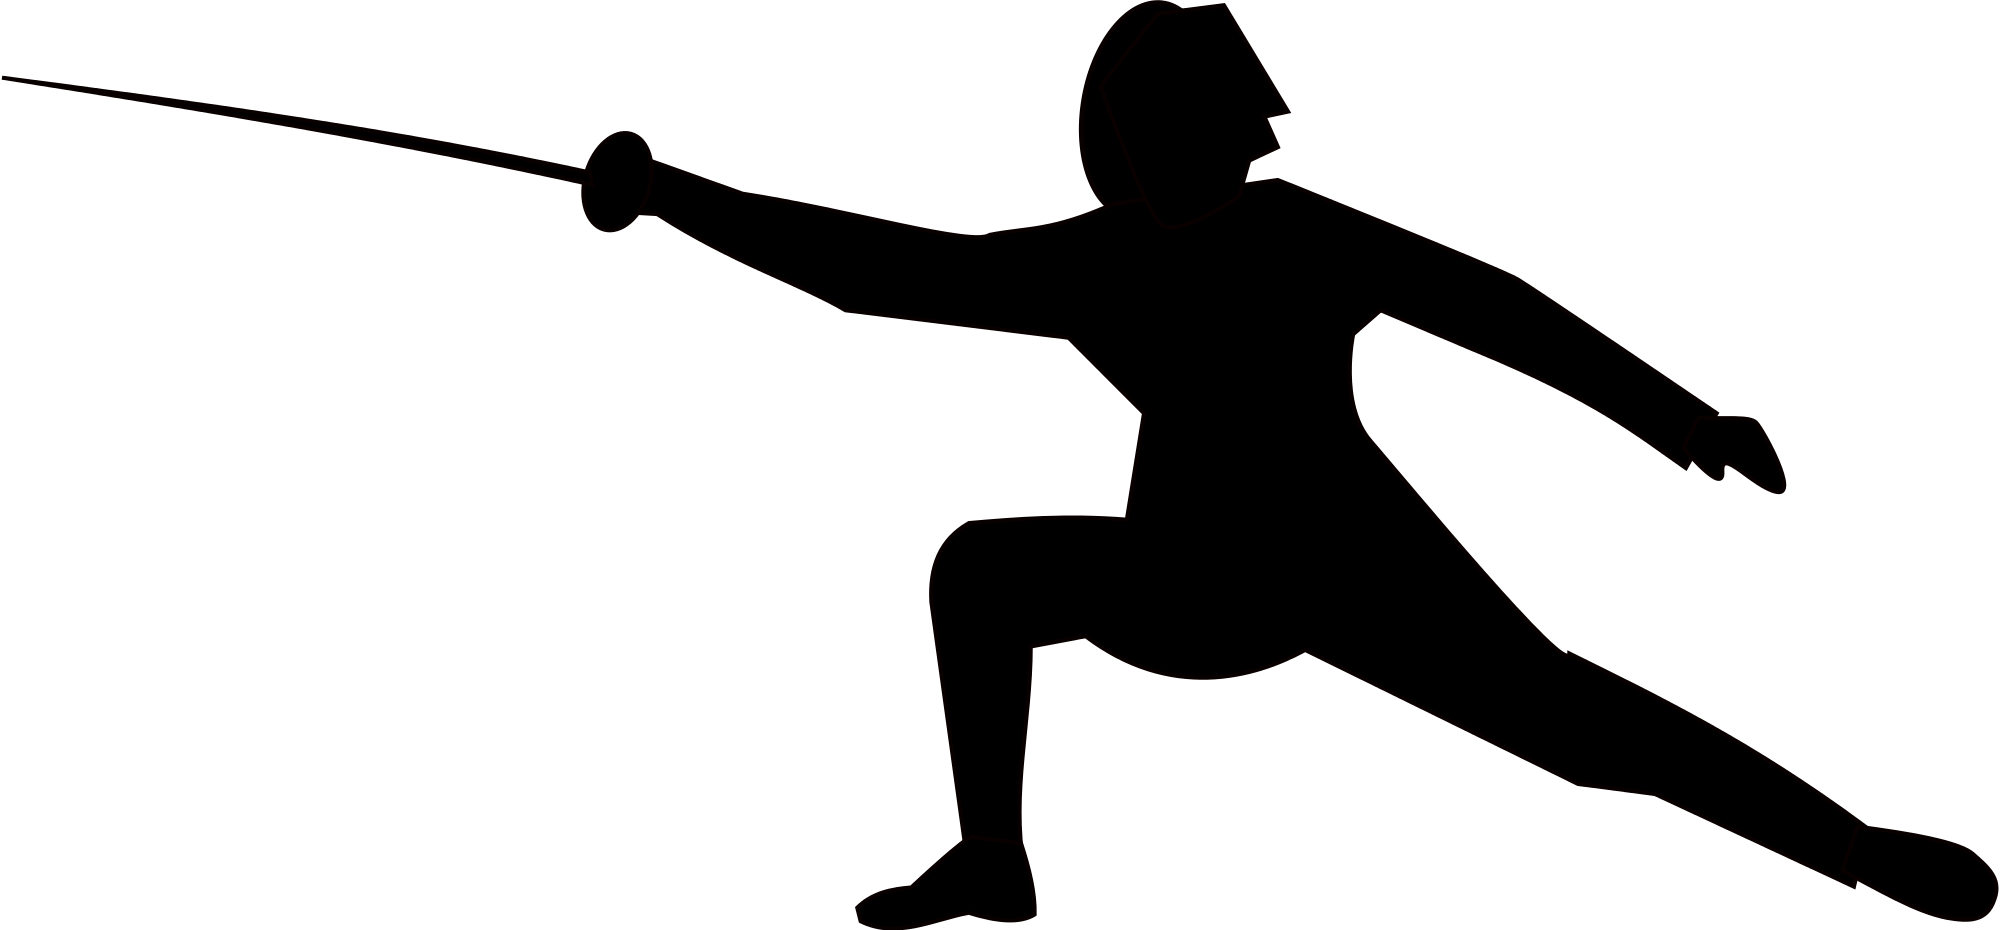 File:Fencer.svg.